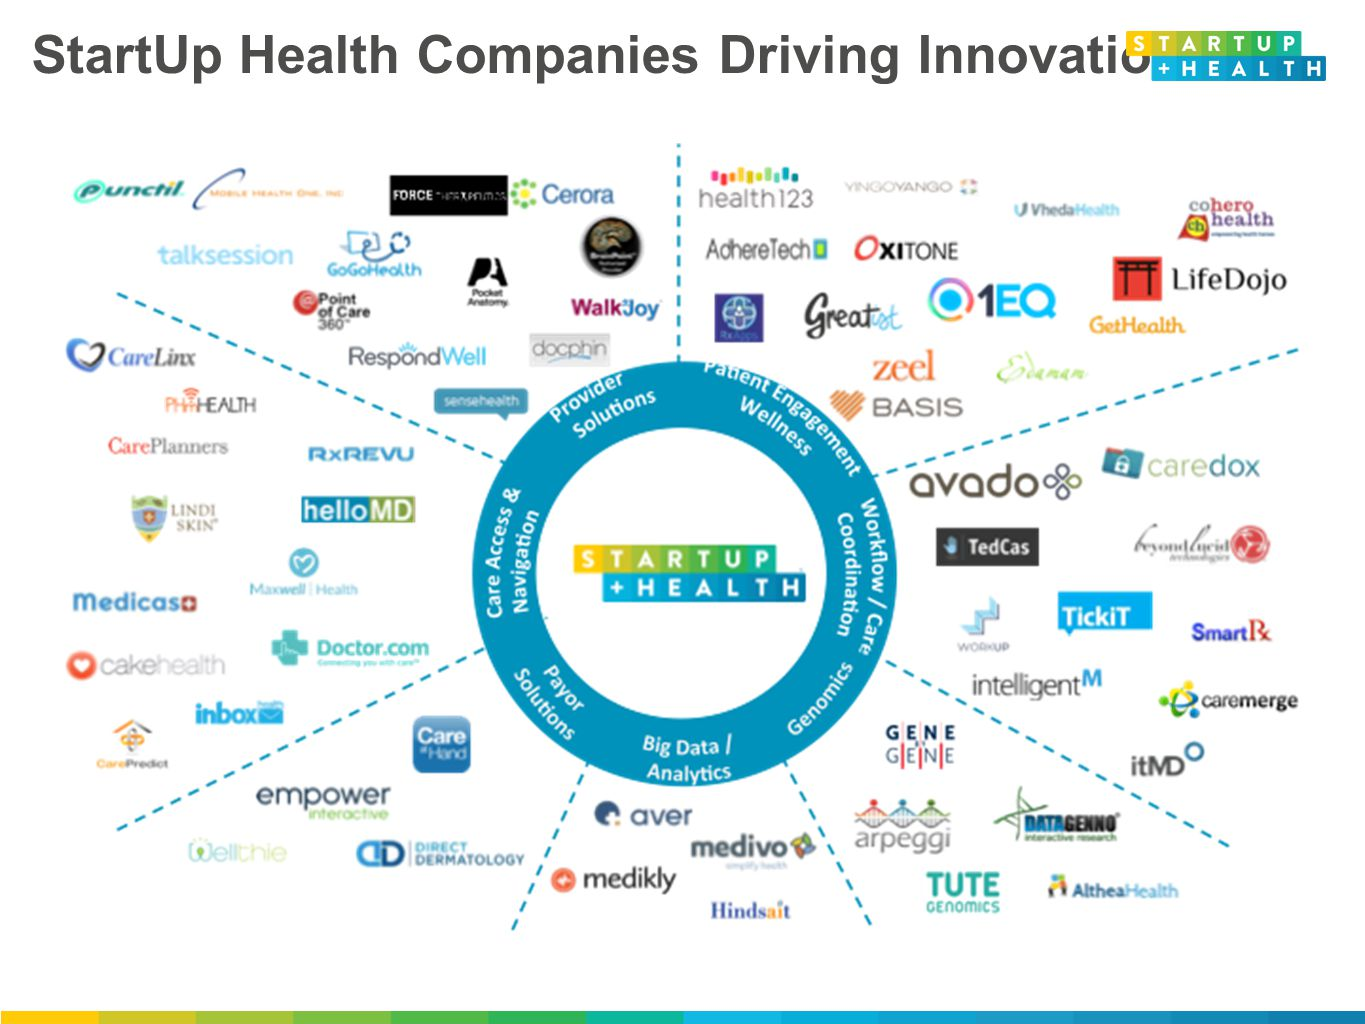 StartUp Health Companies Driving Innovation